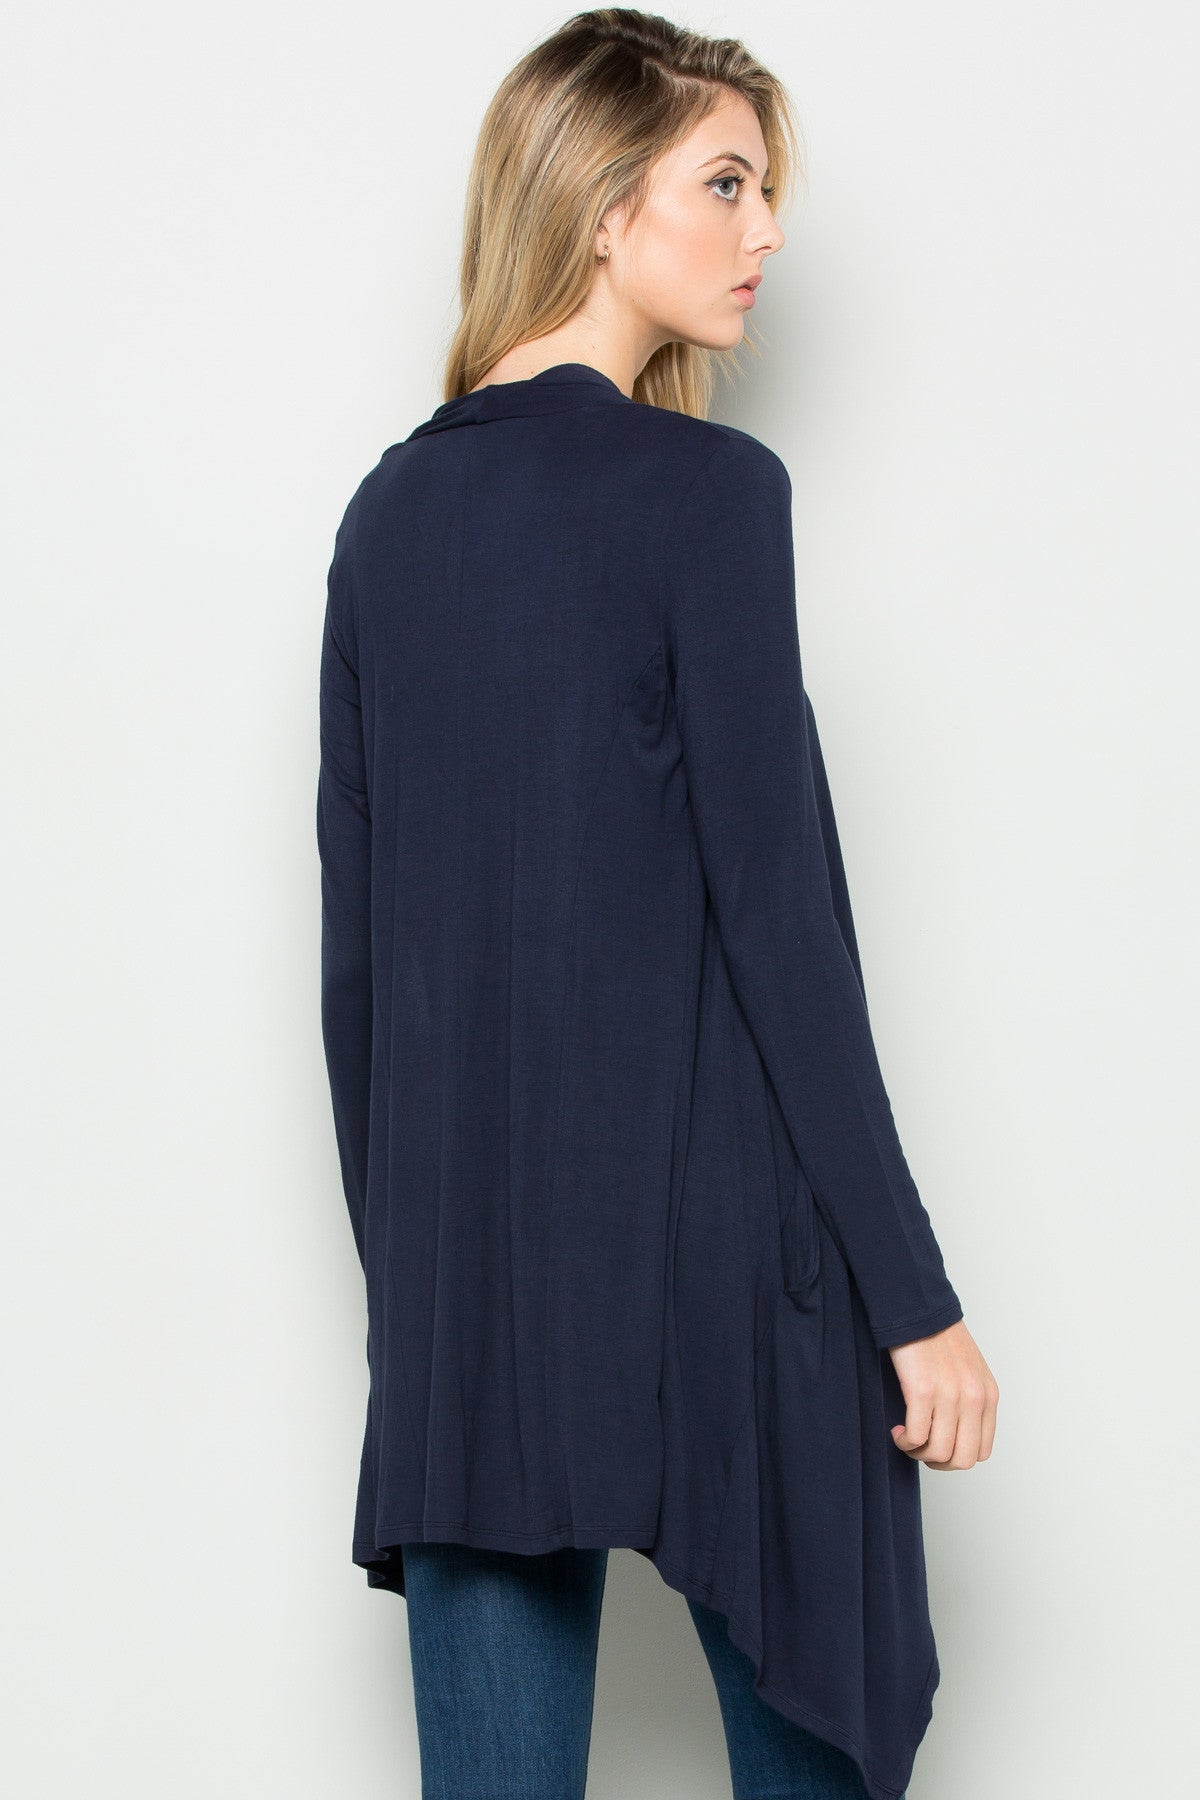 Navy Lightweight Long Sleeve Cardigan - Jacket - My Yuccie - 3